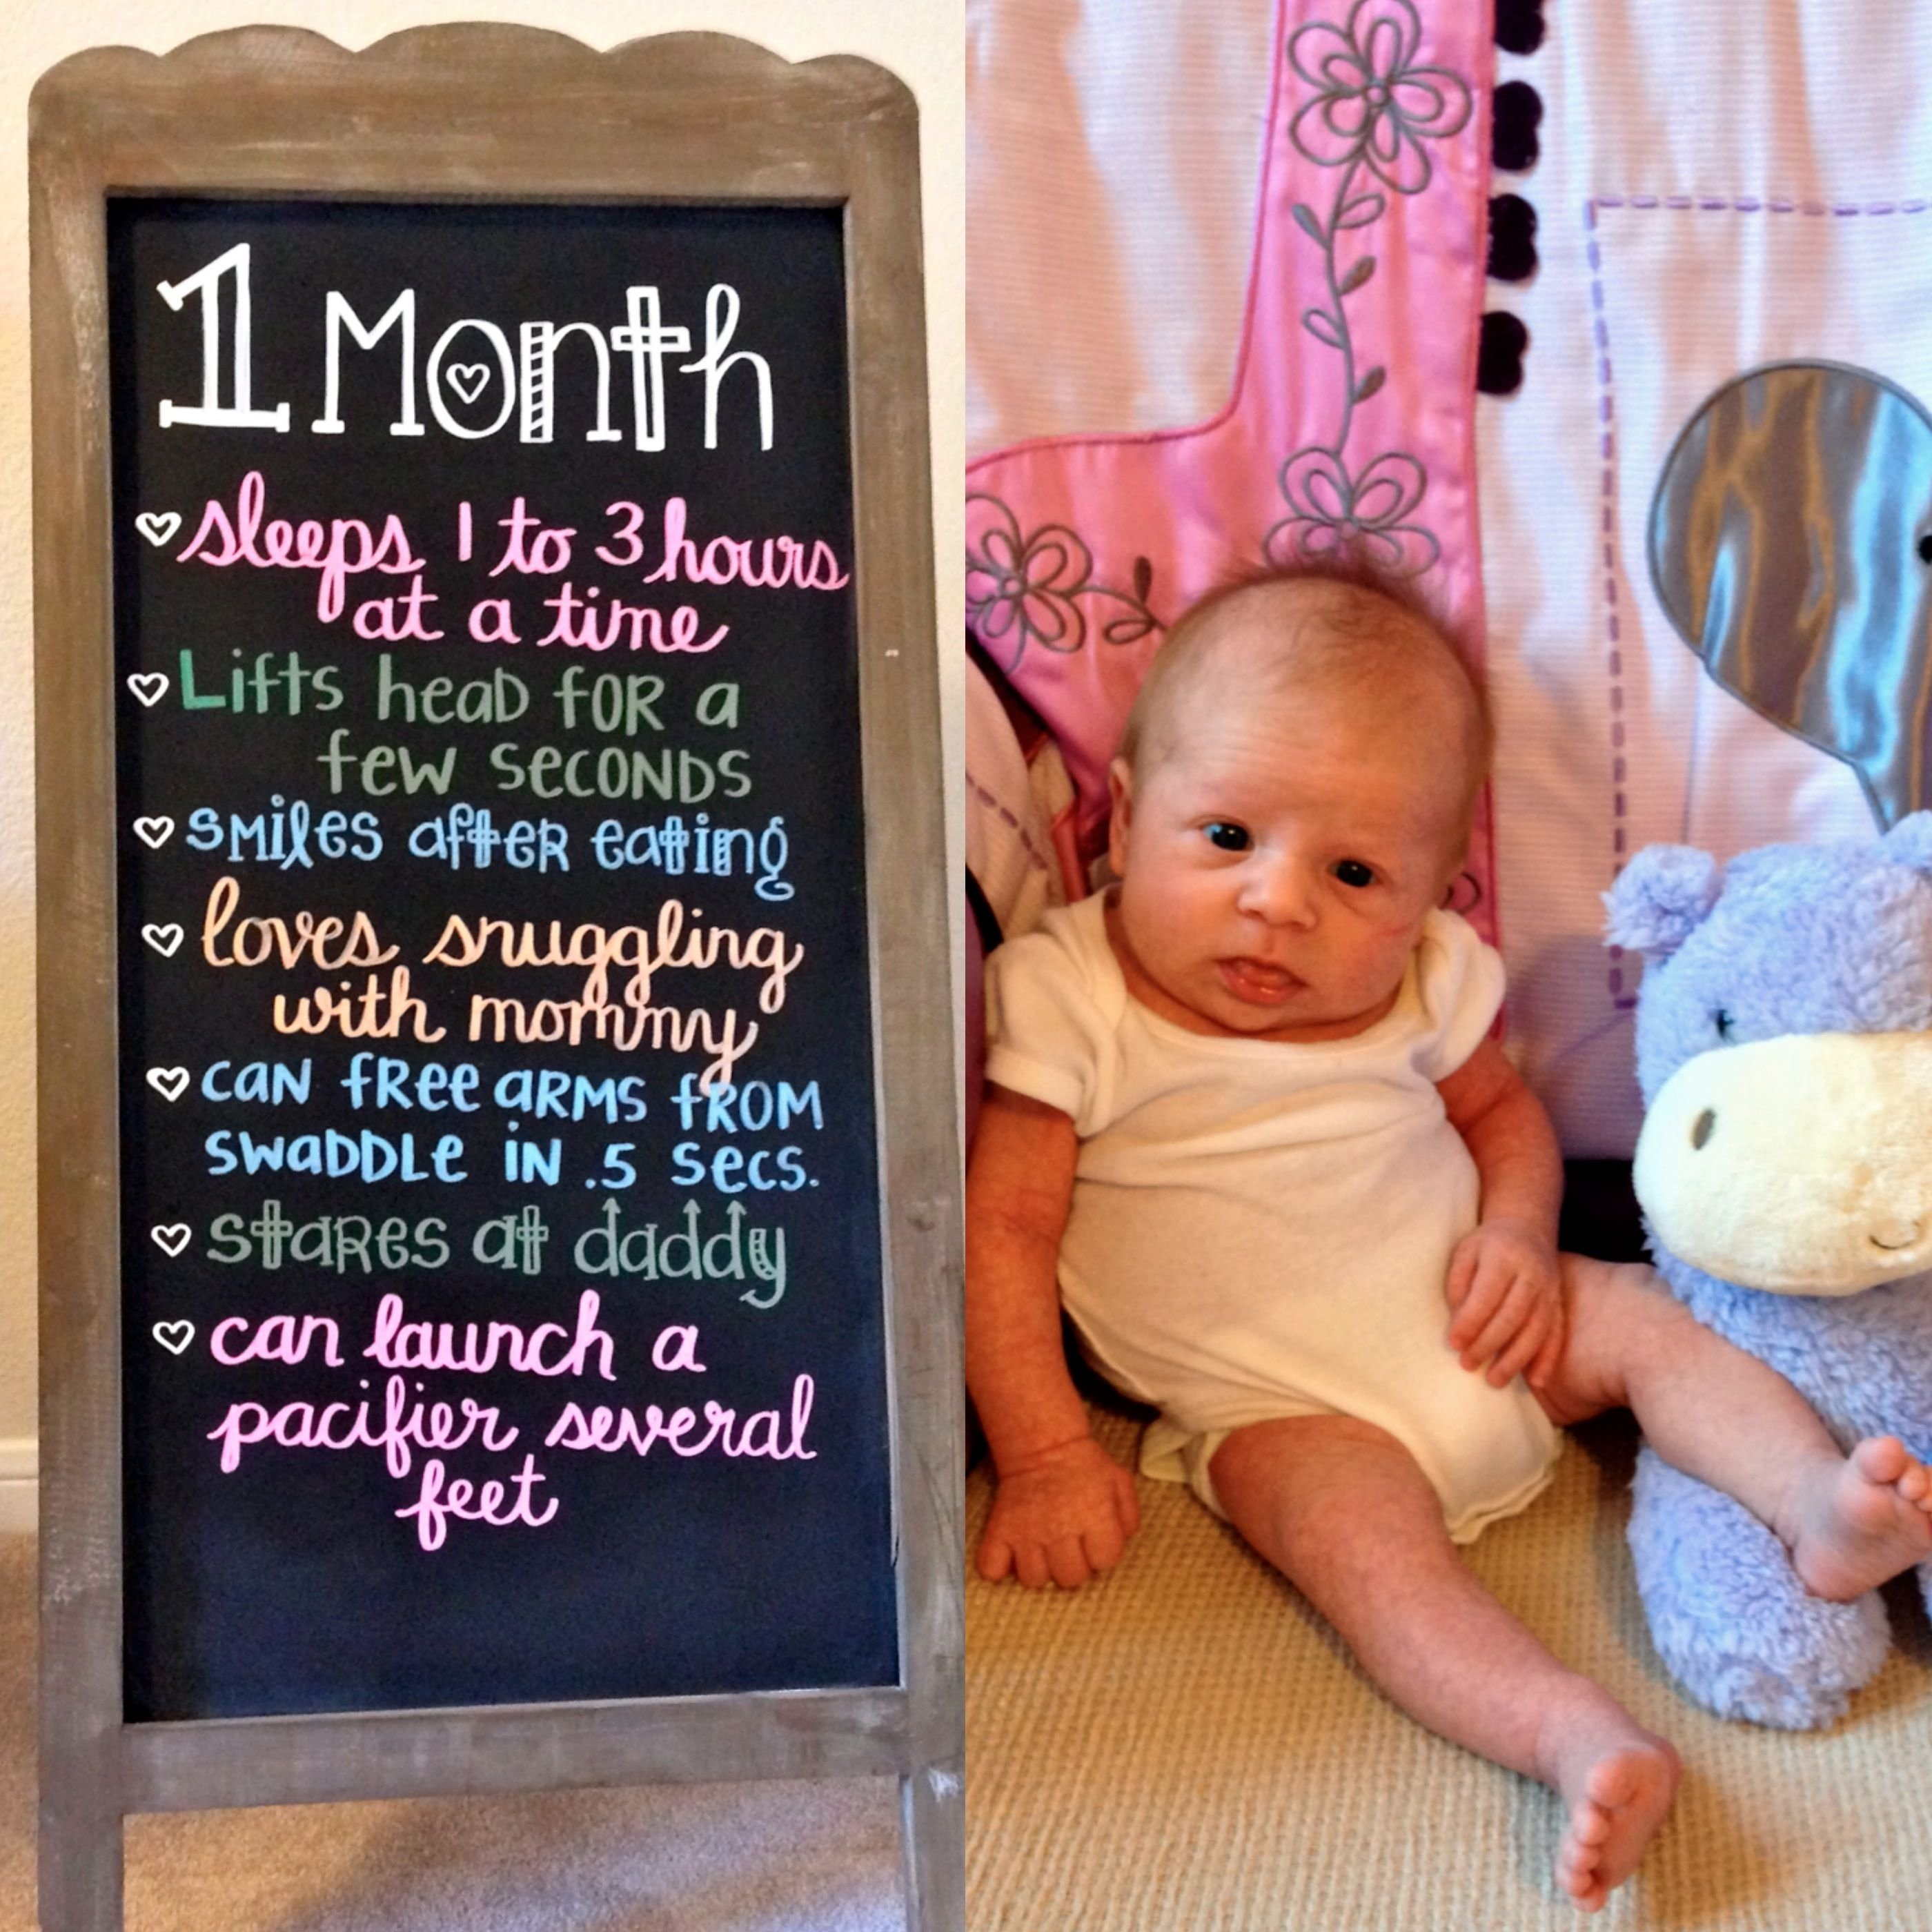 10 Unique 1 Month Baby Picture Ideas 1 month baby chalkboard pinteres 2021